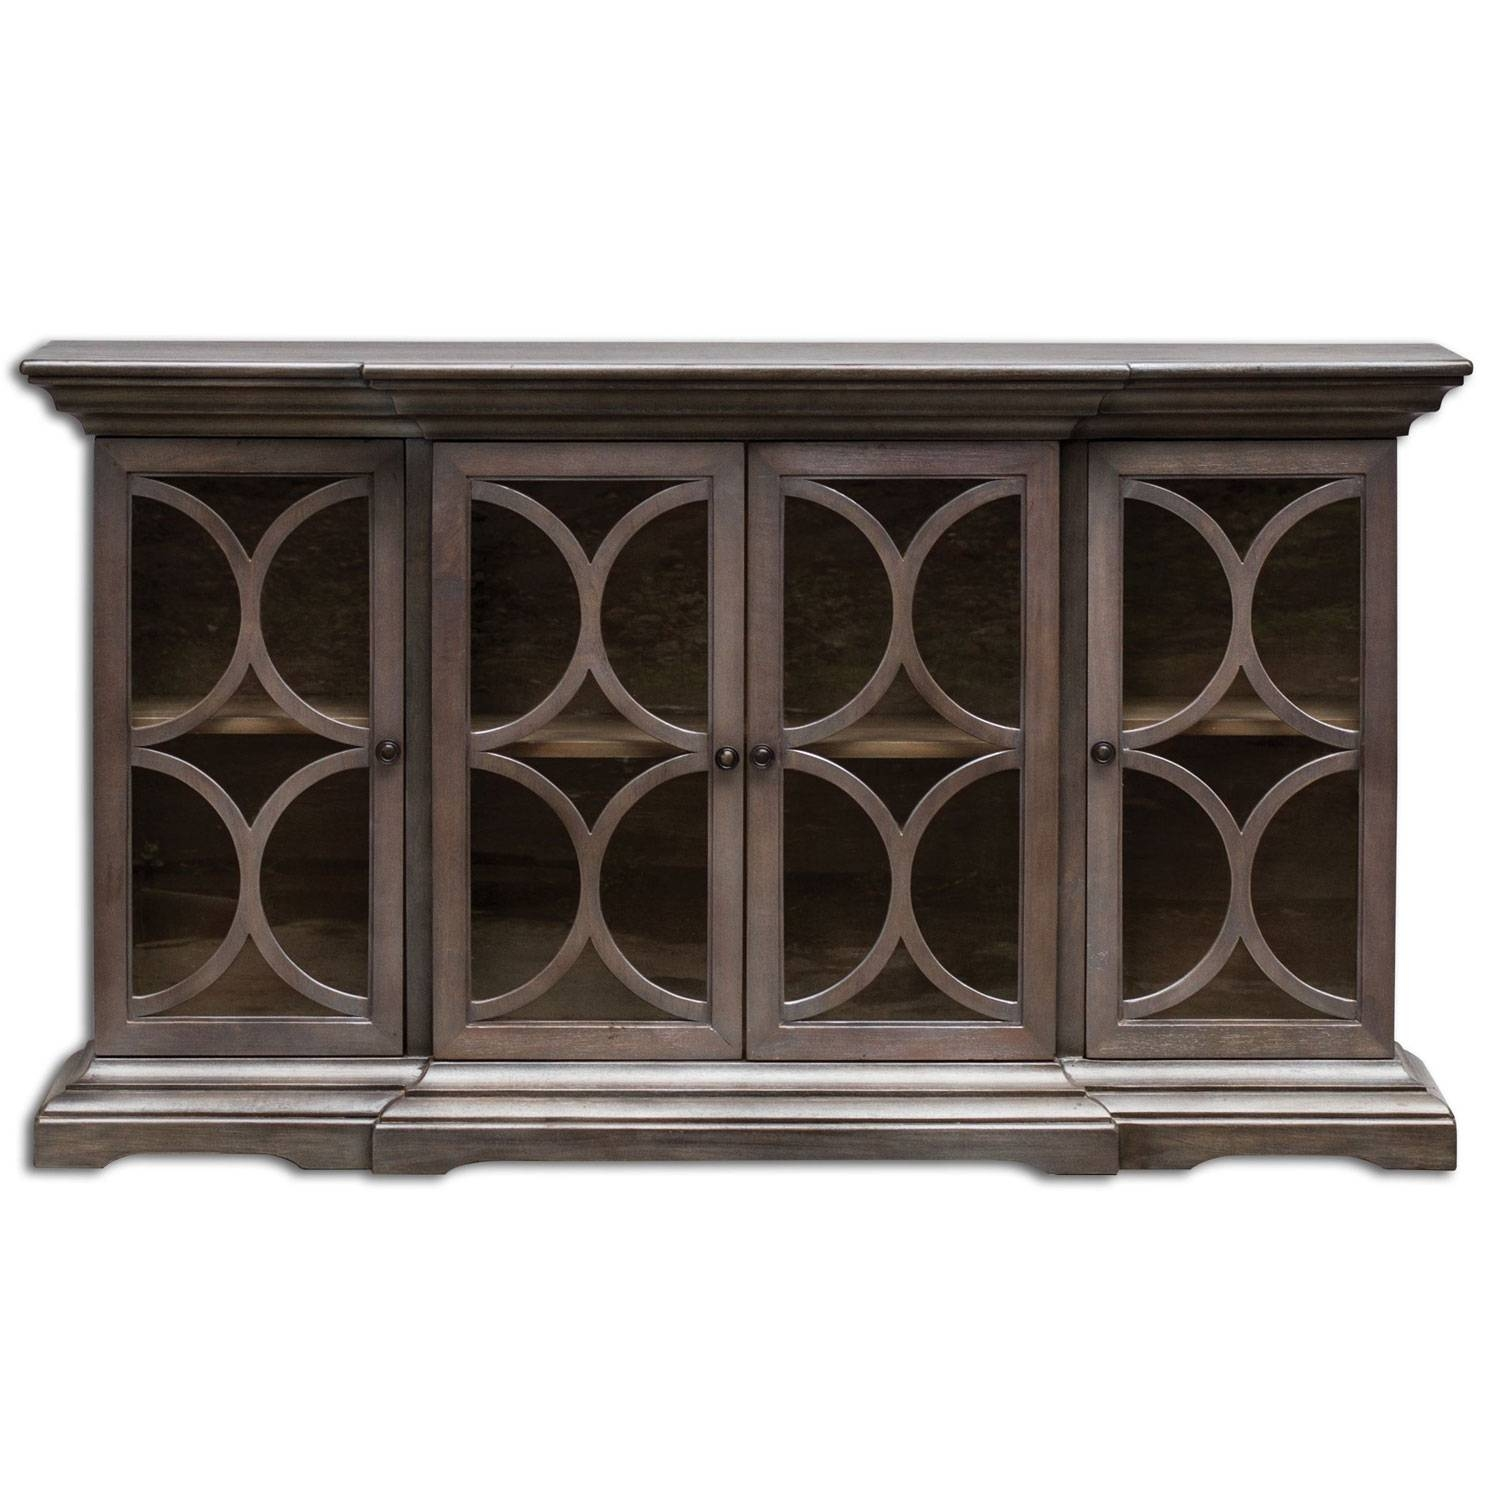 Accent Cabinets & Chests | Wooden Storage For The Home On Sale with Shallow Sideboard Cabinets (Image 2 of 30)